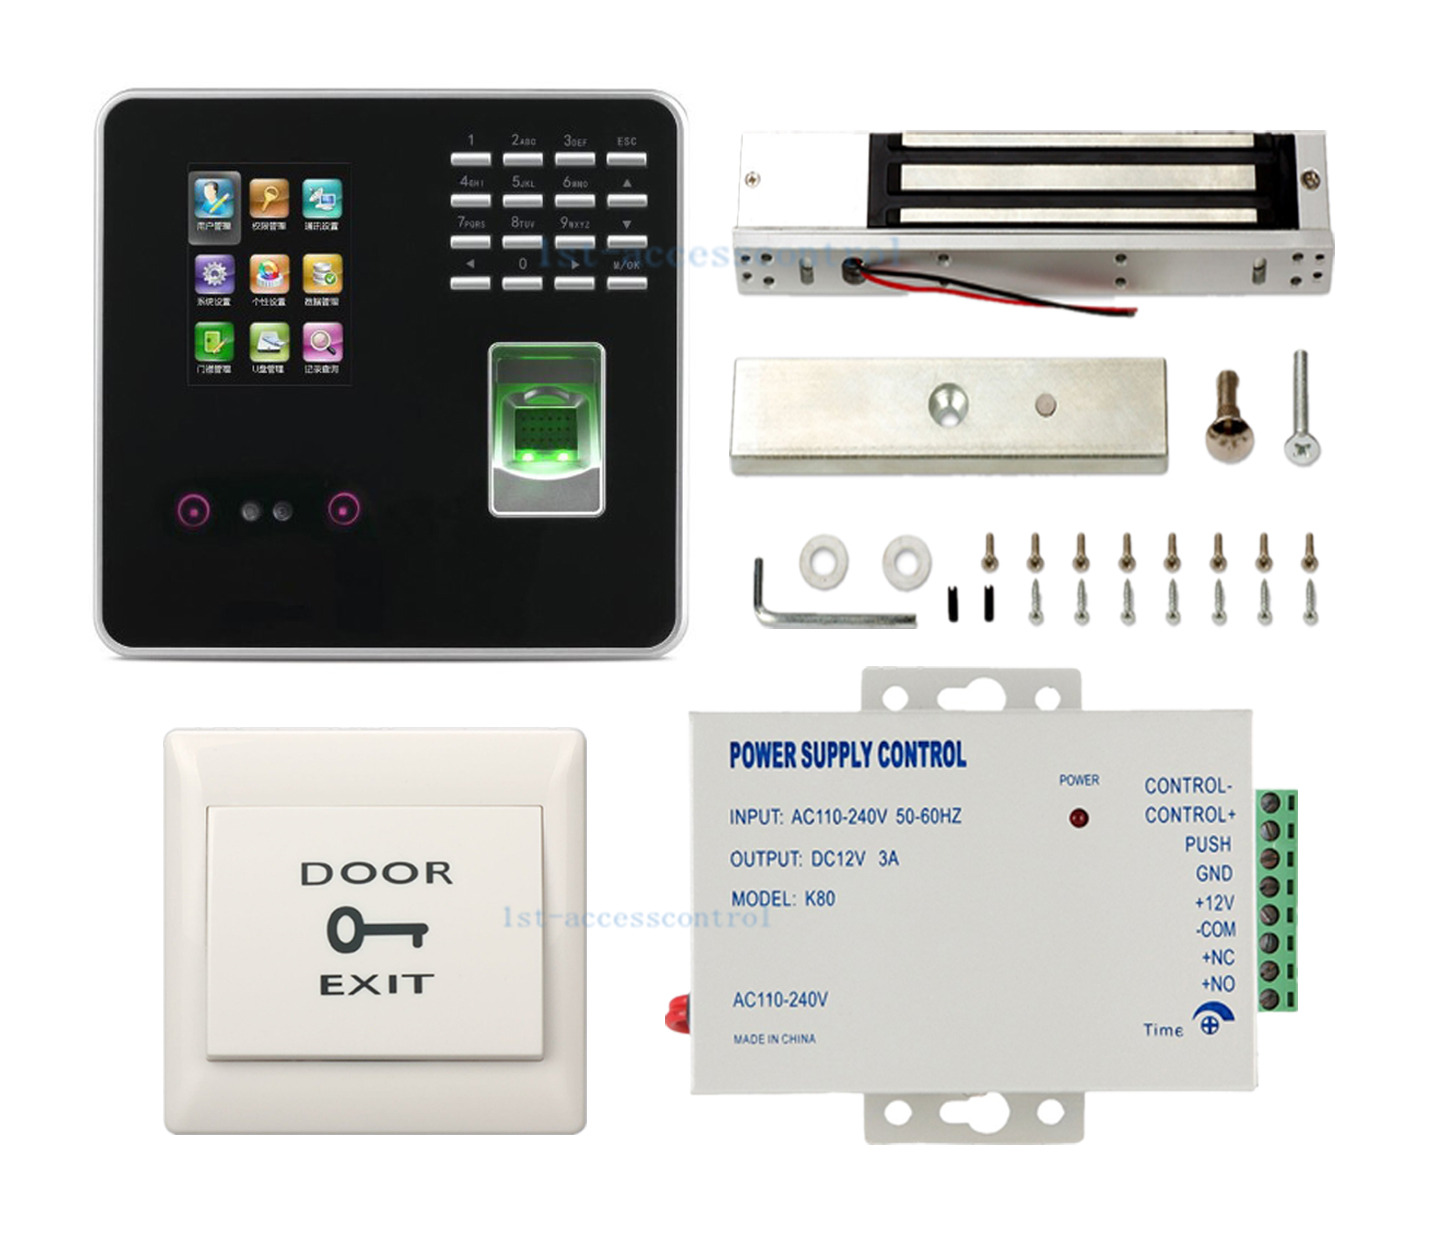 Details about ZK UF200 Web Based TCP/IP Face/Fingerprint Time Attendance  Access Control System